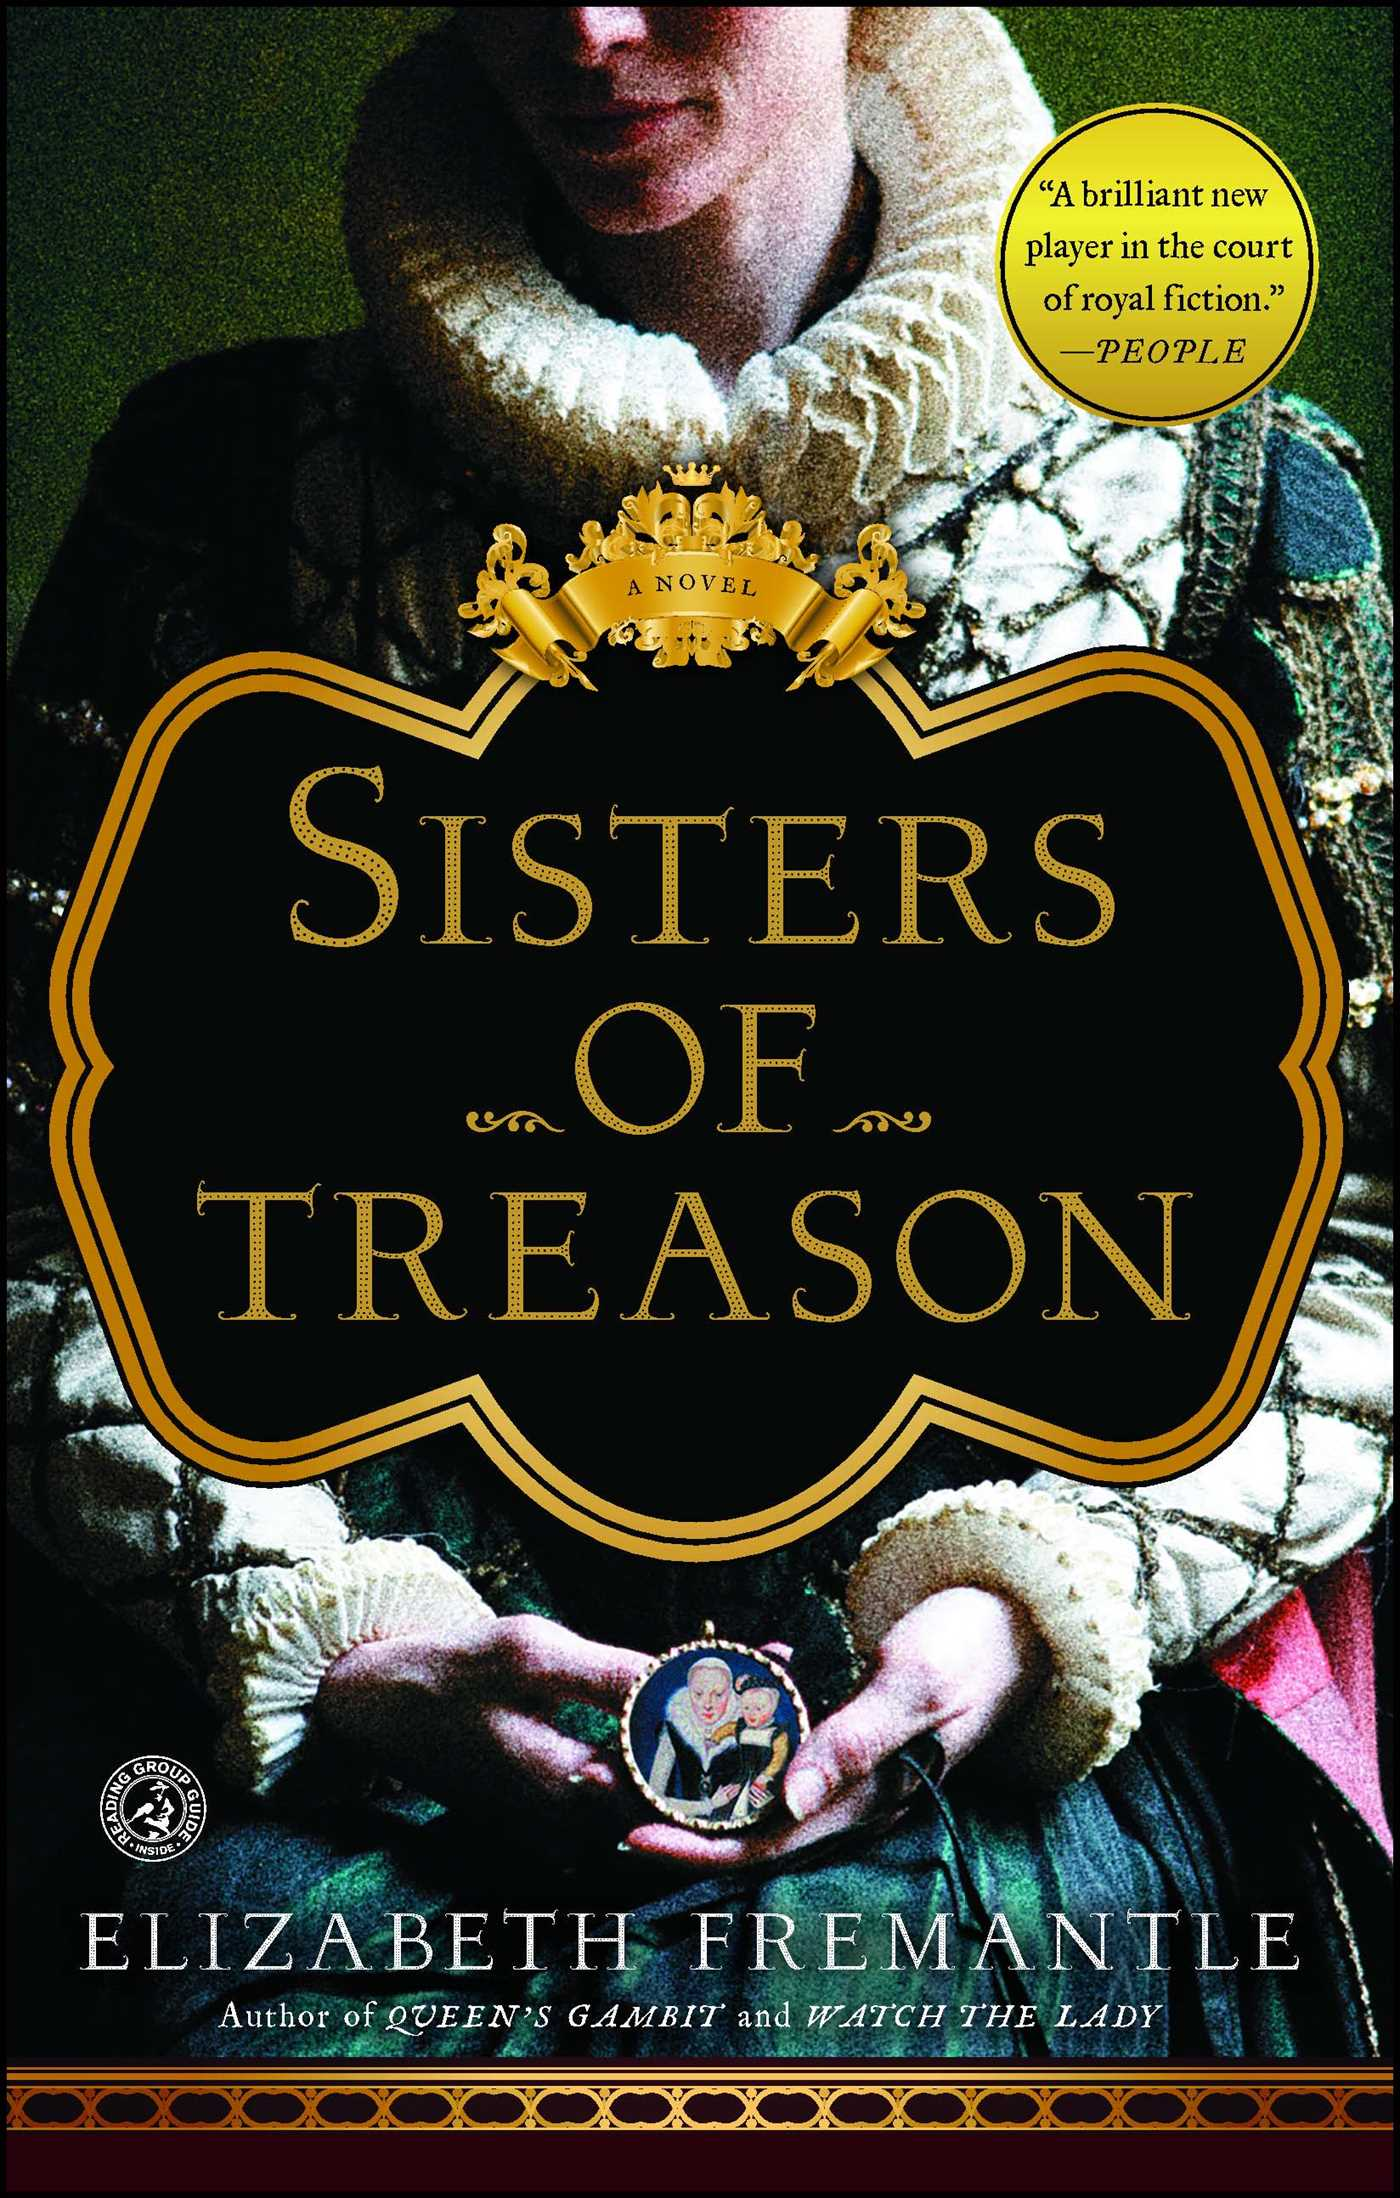 Sisters-of-treason-9781476703114_hr